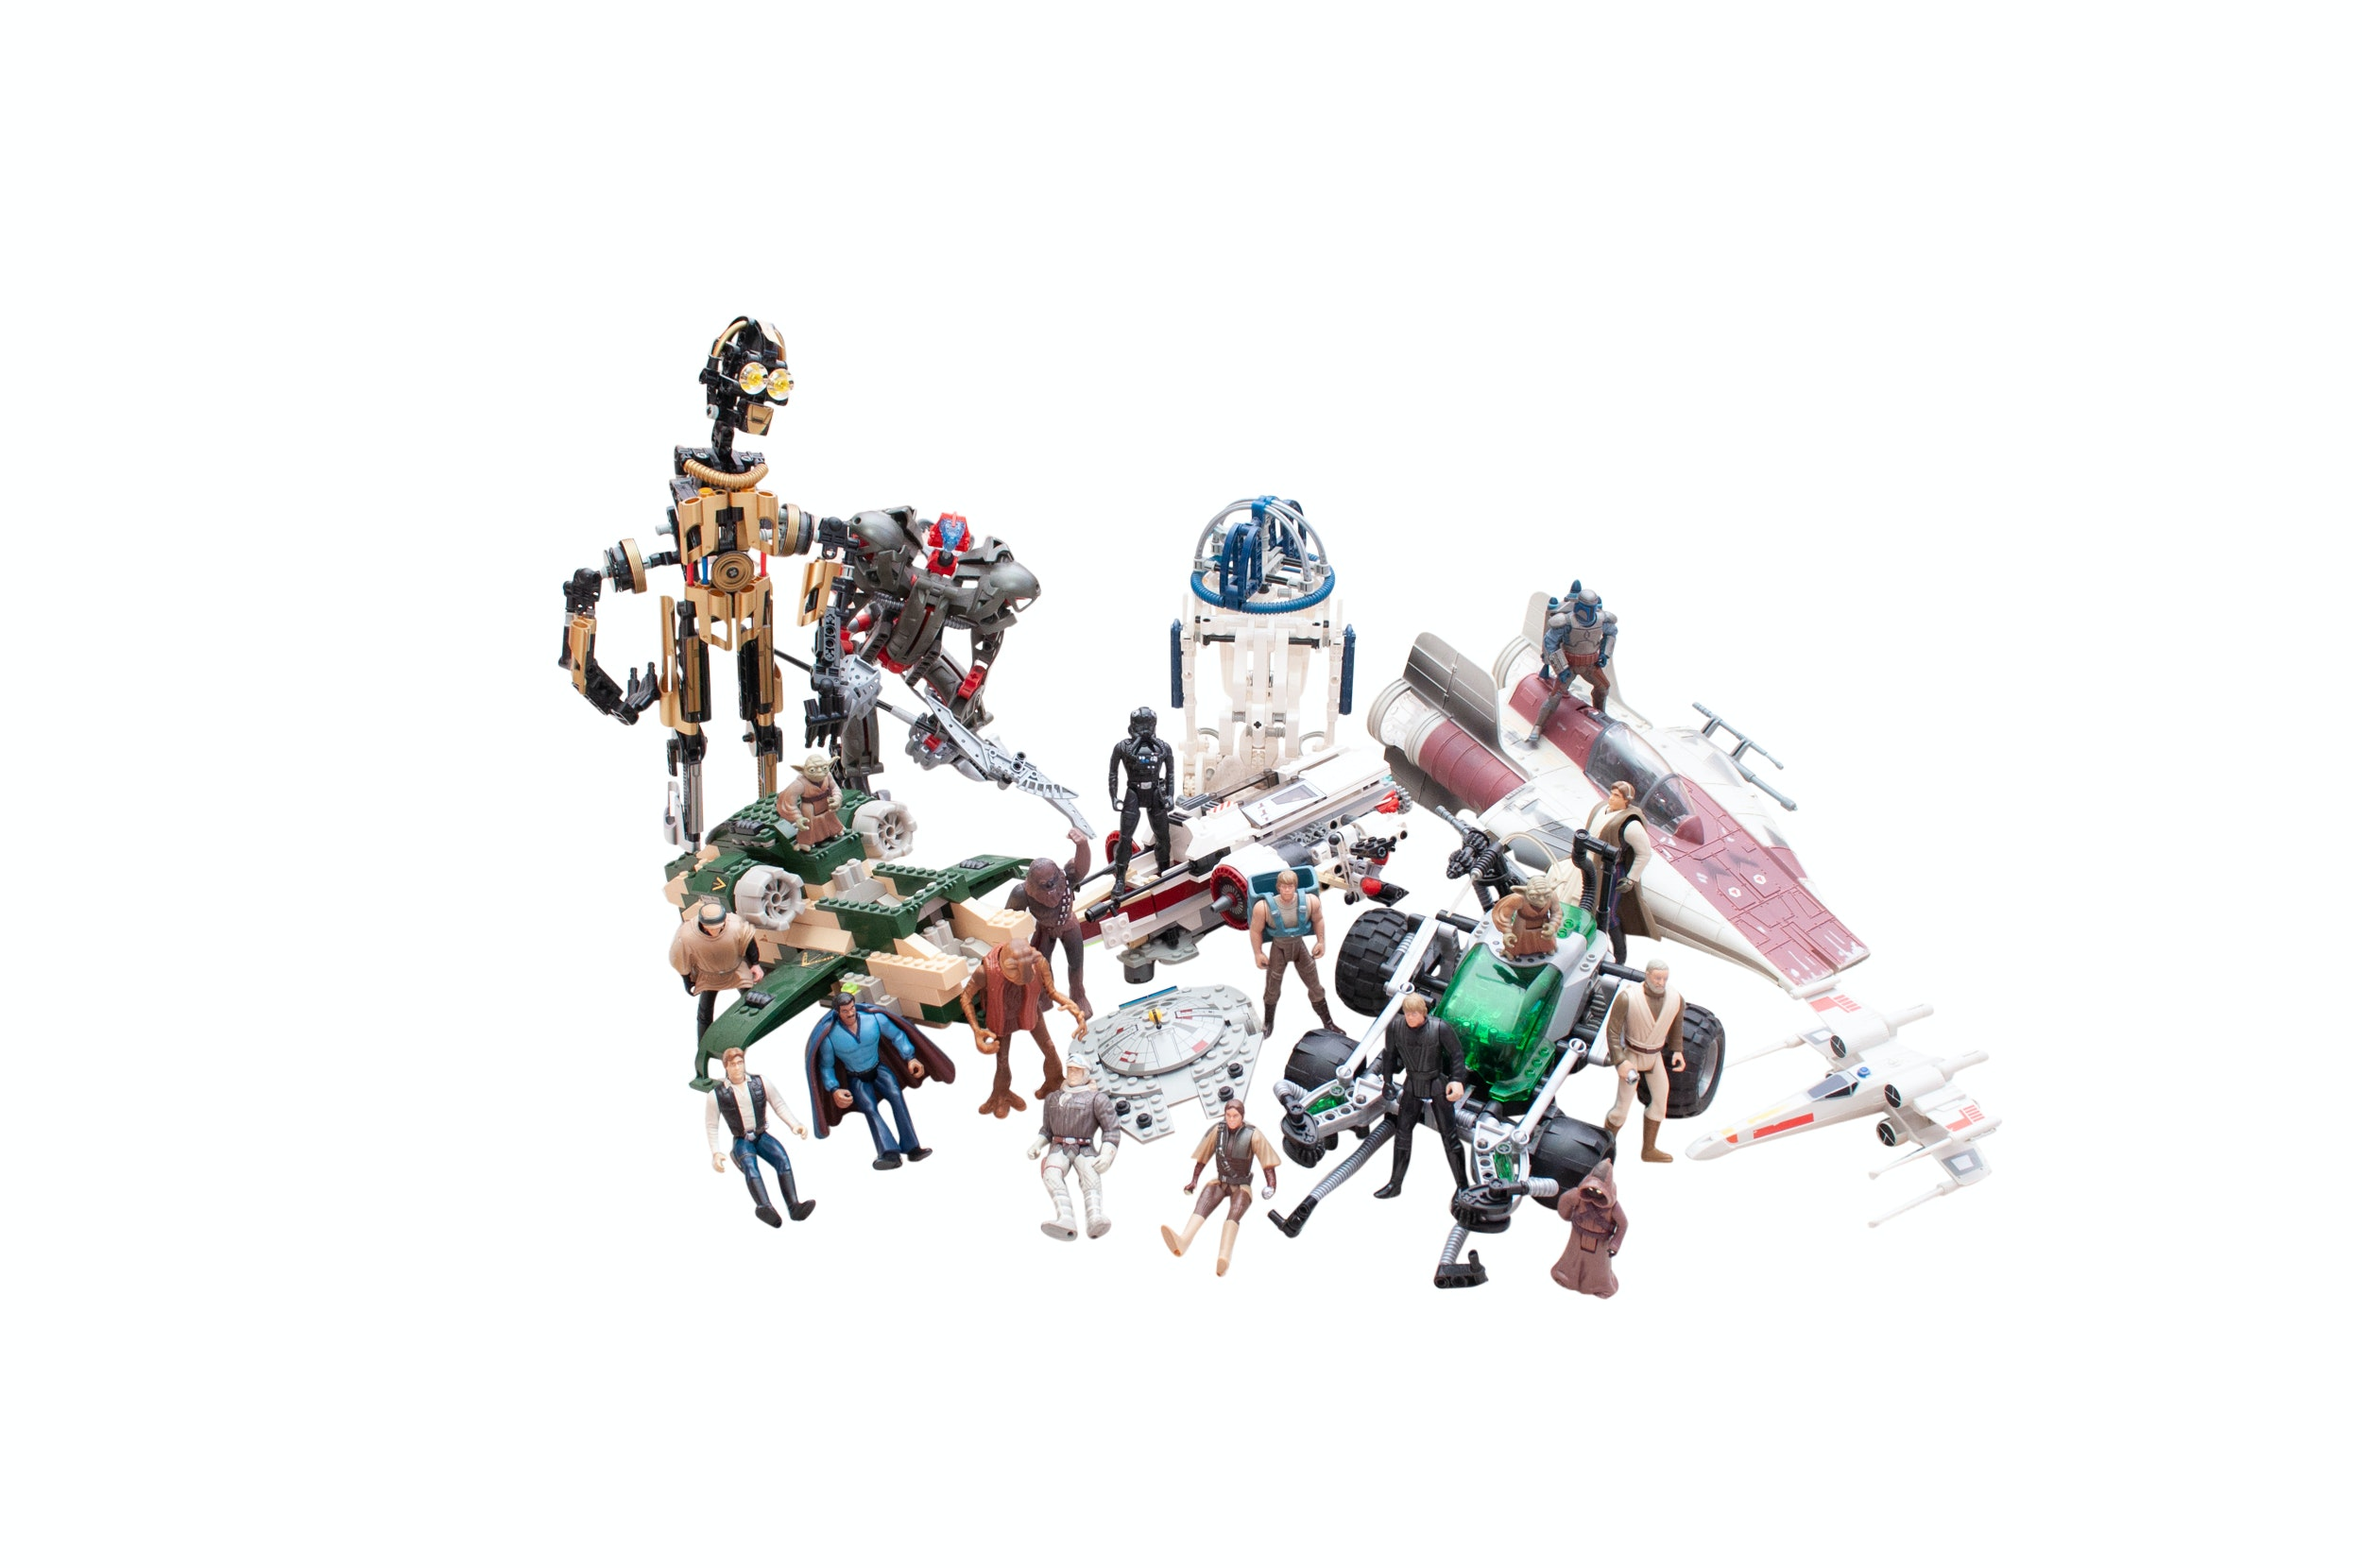 Vintage Star Wars Figurines and Construction Sets